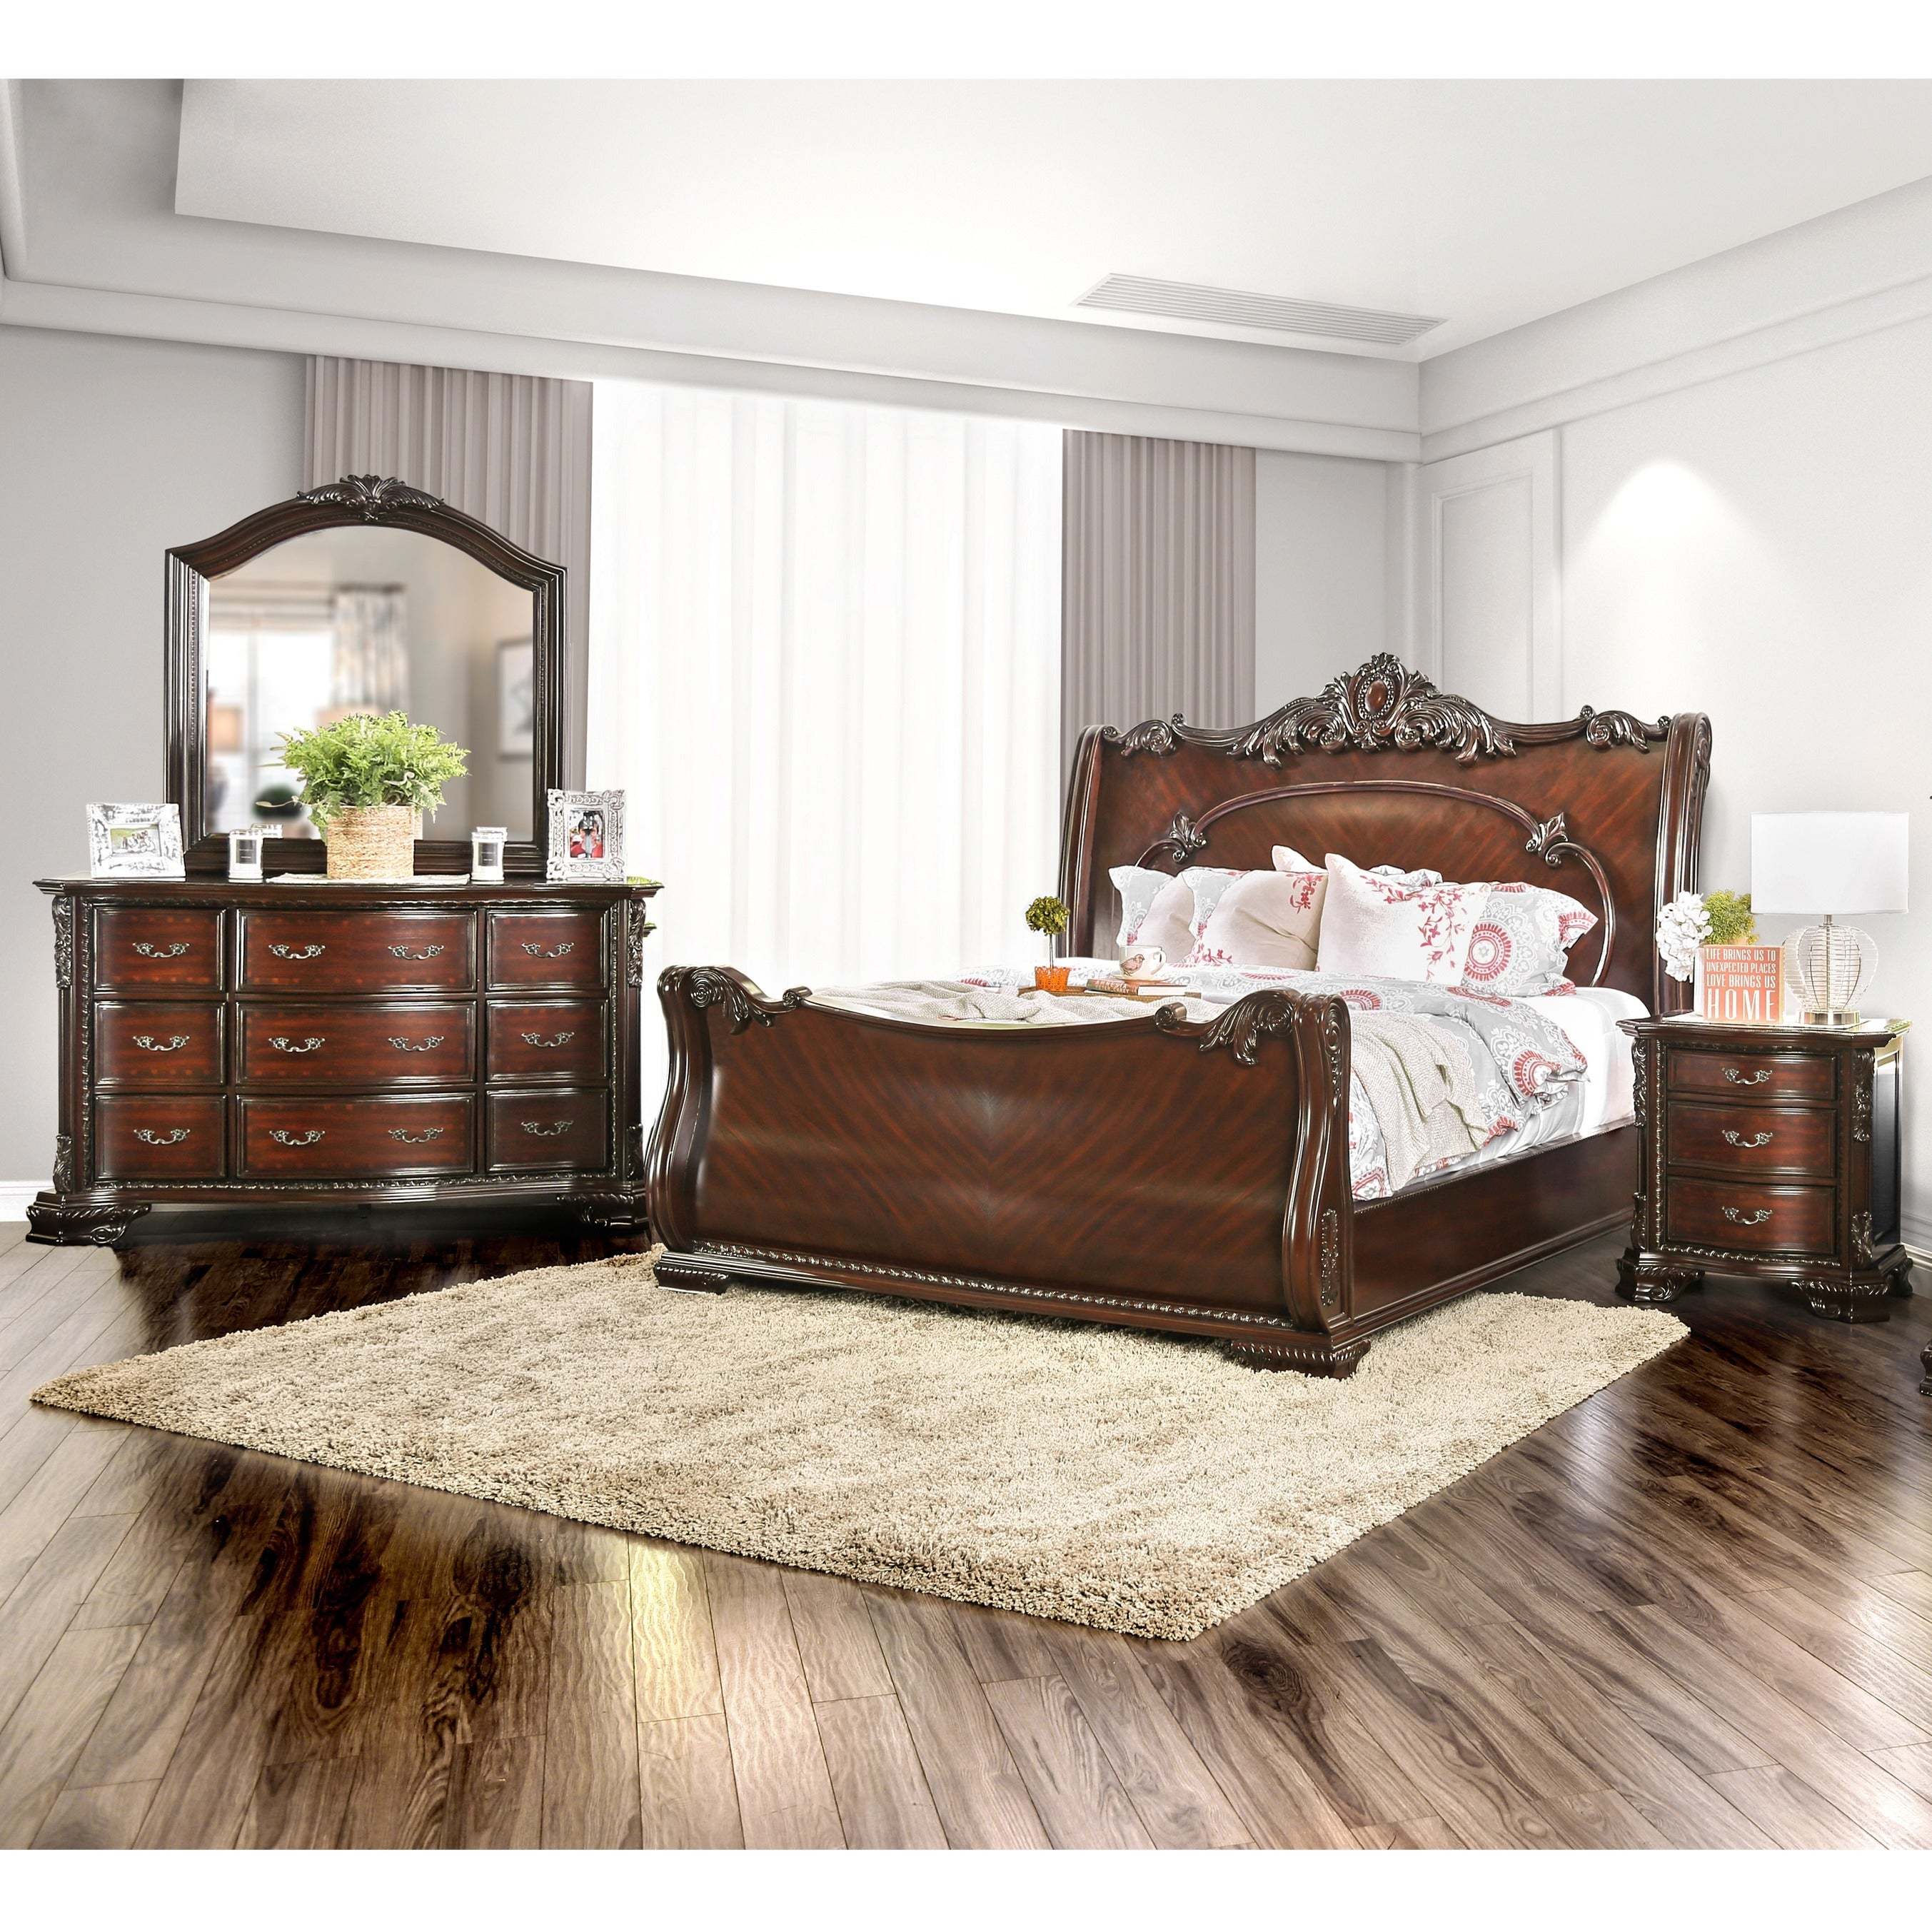 Art- As8201 Baroque Italy Style New Bedroom Furniture,Royal Luxury ...